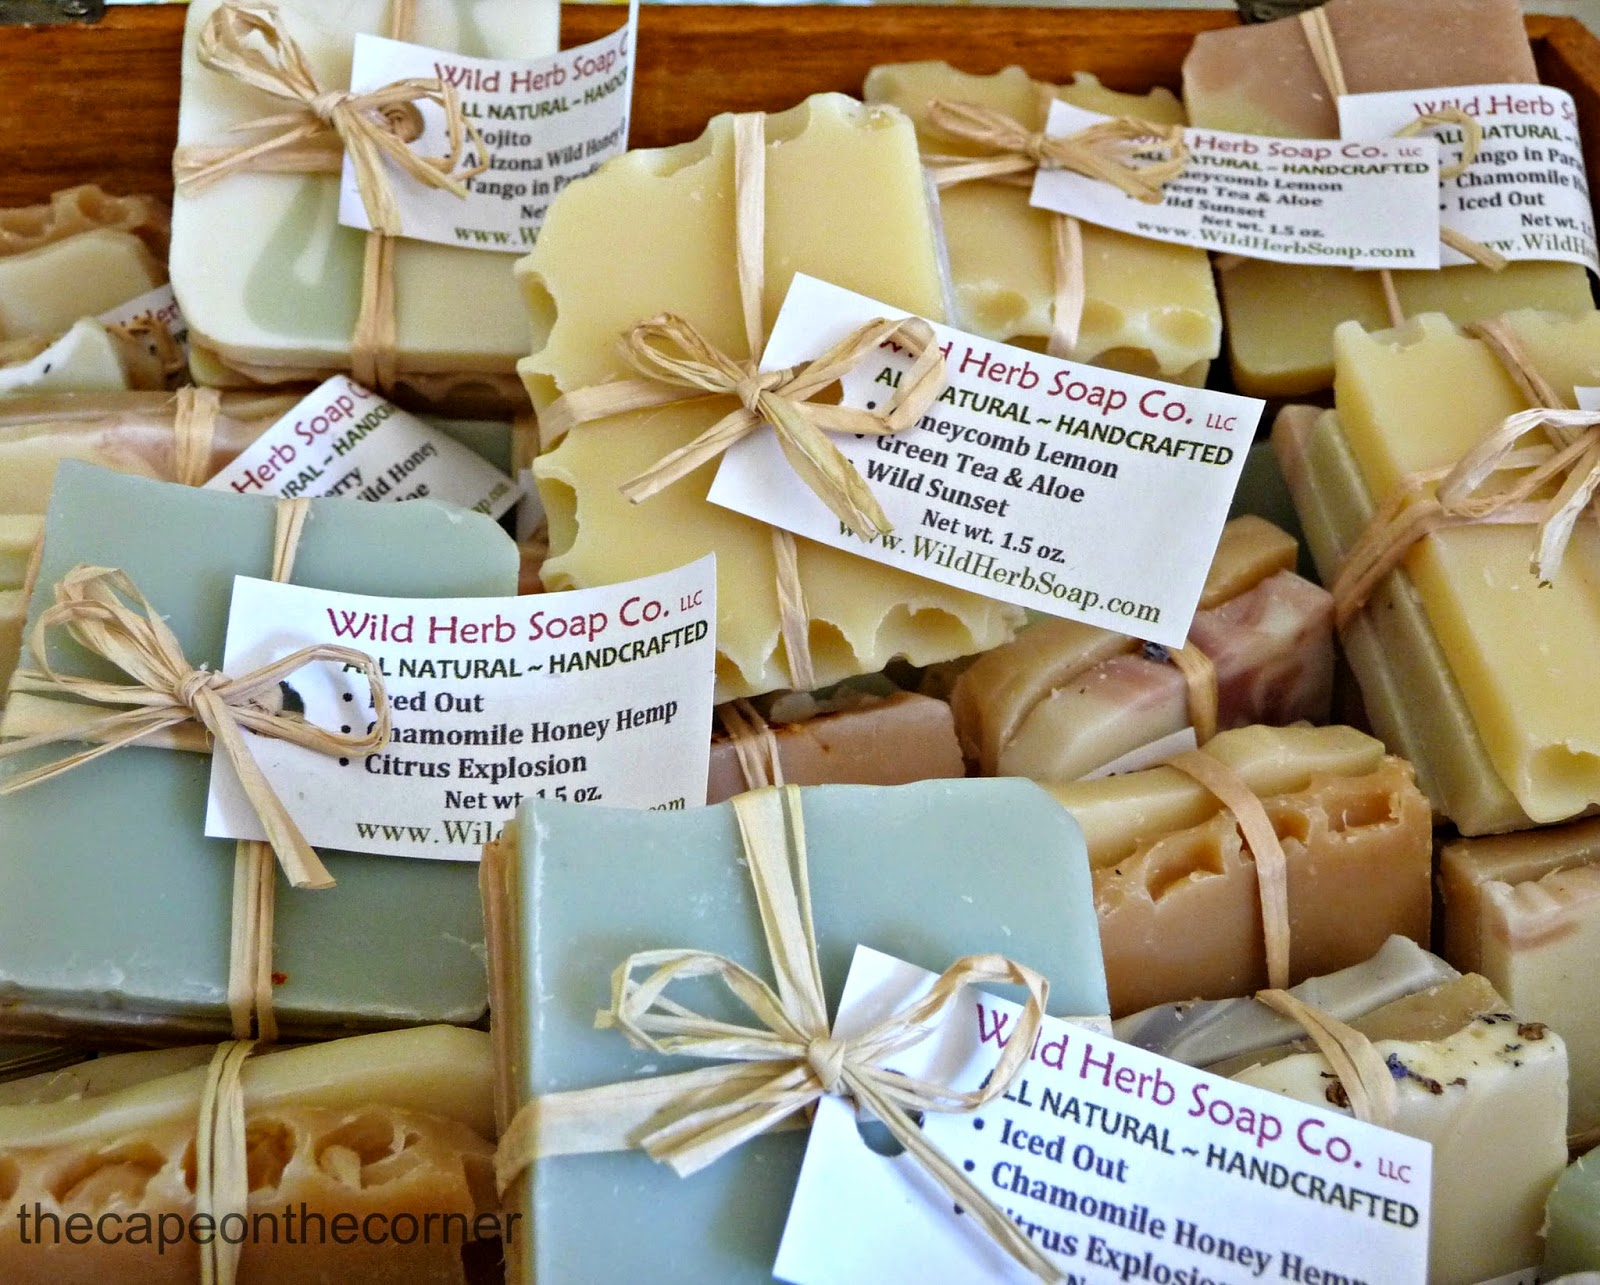 wild herb soap co.